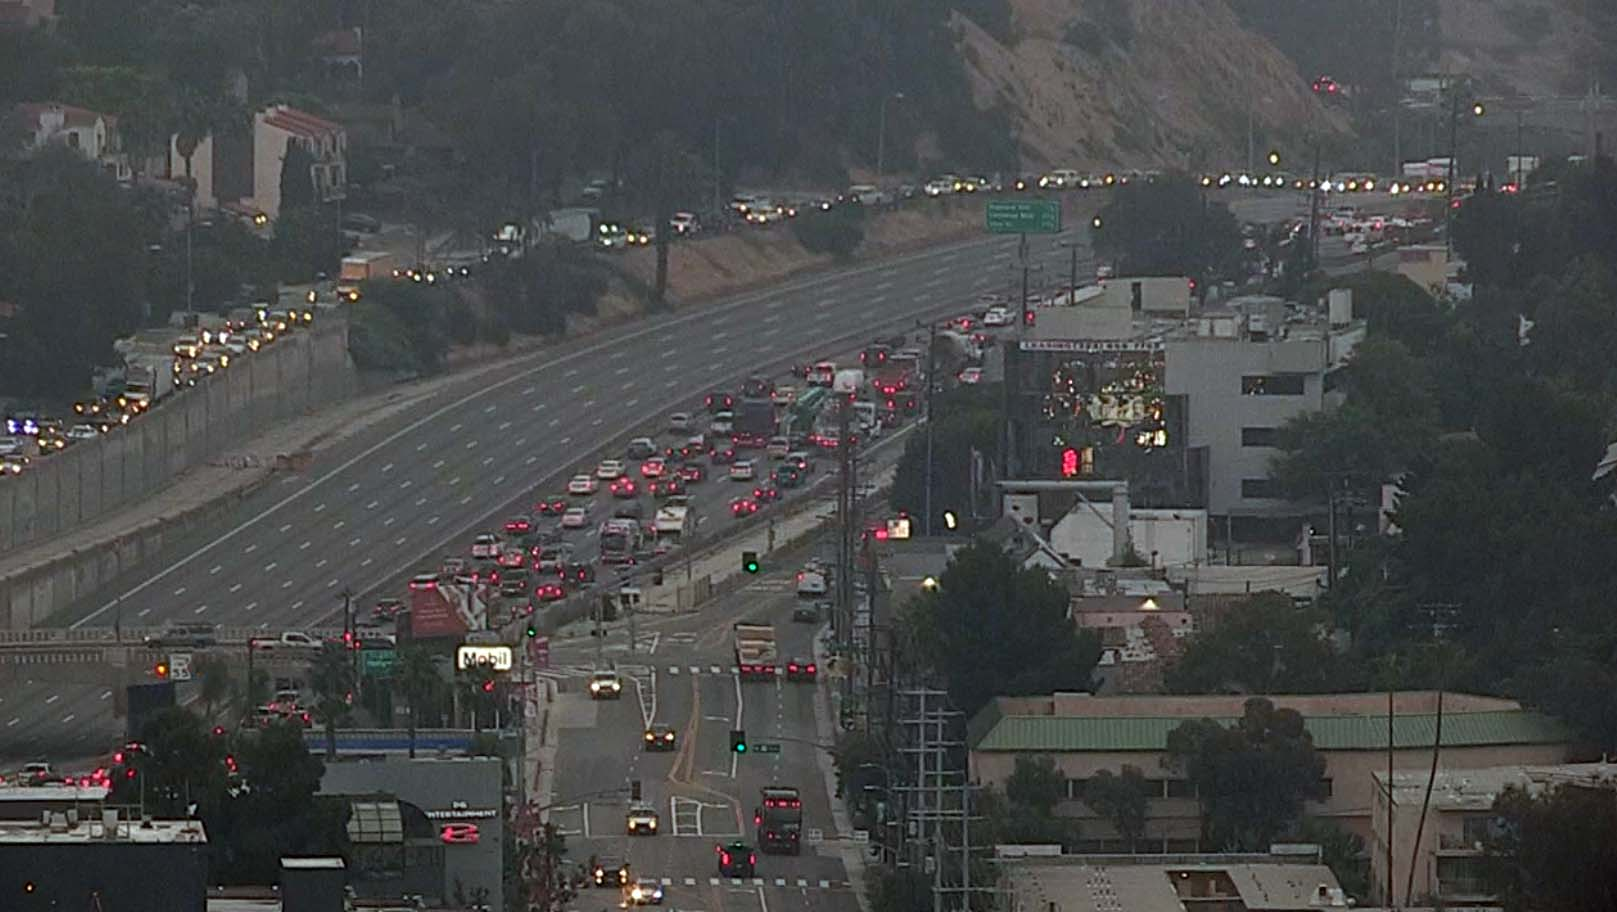 101 Freeway Reopens After Morning Closure in Cahuenga Pass